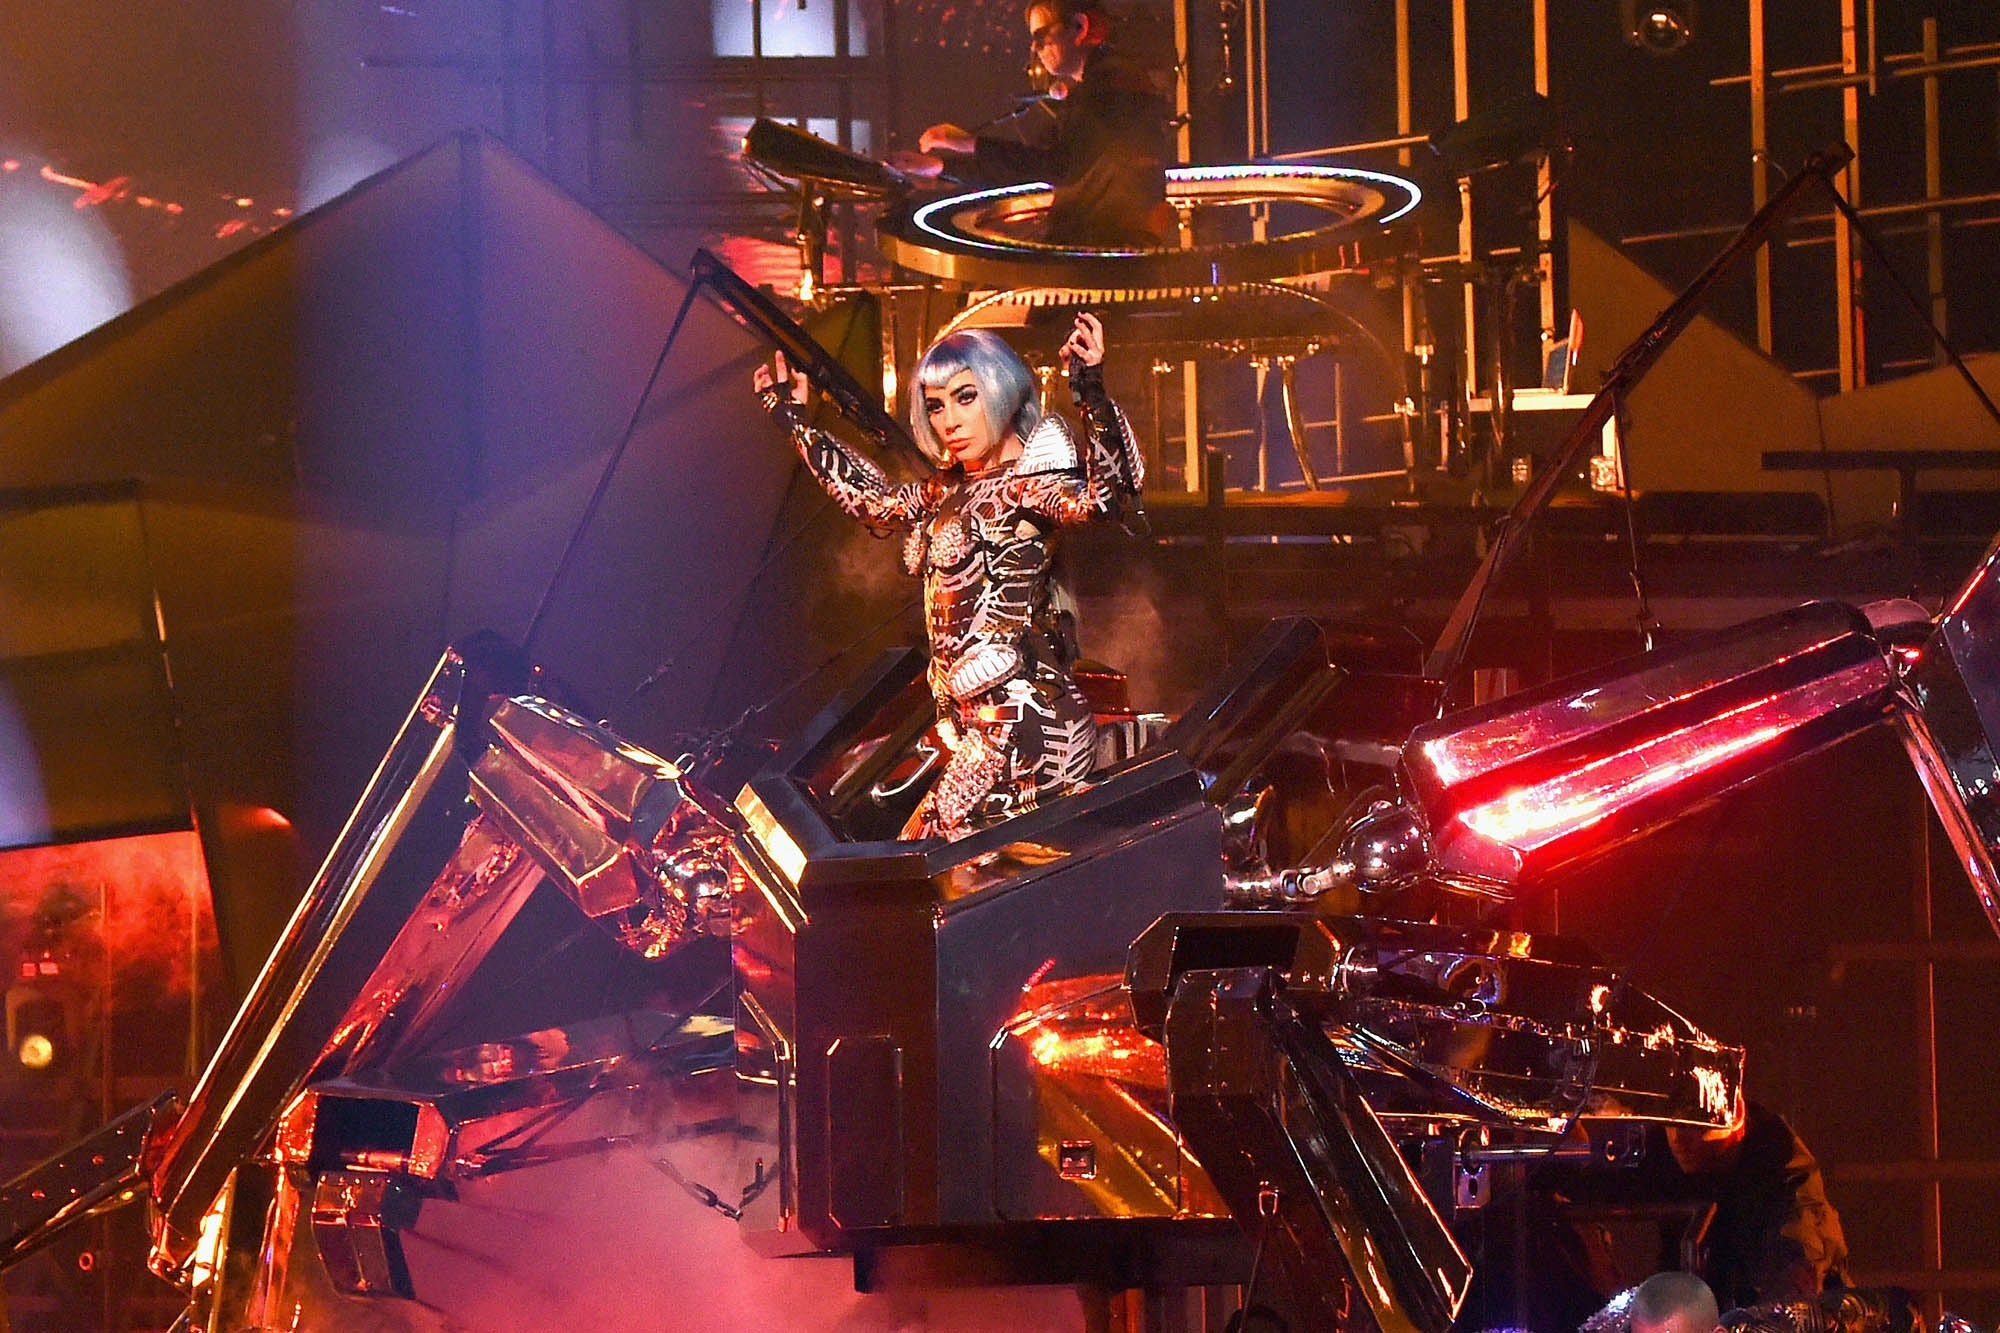 Tickets are still on sale for Lady Gaga's Las Vegas shows.